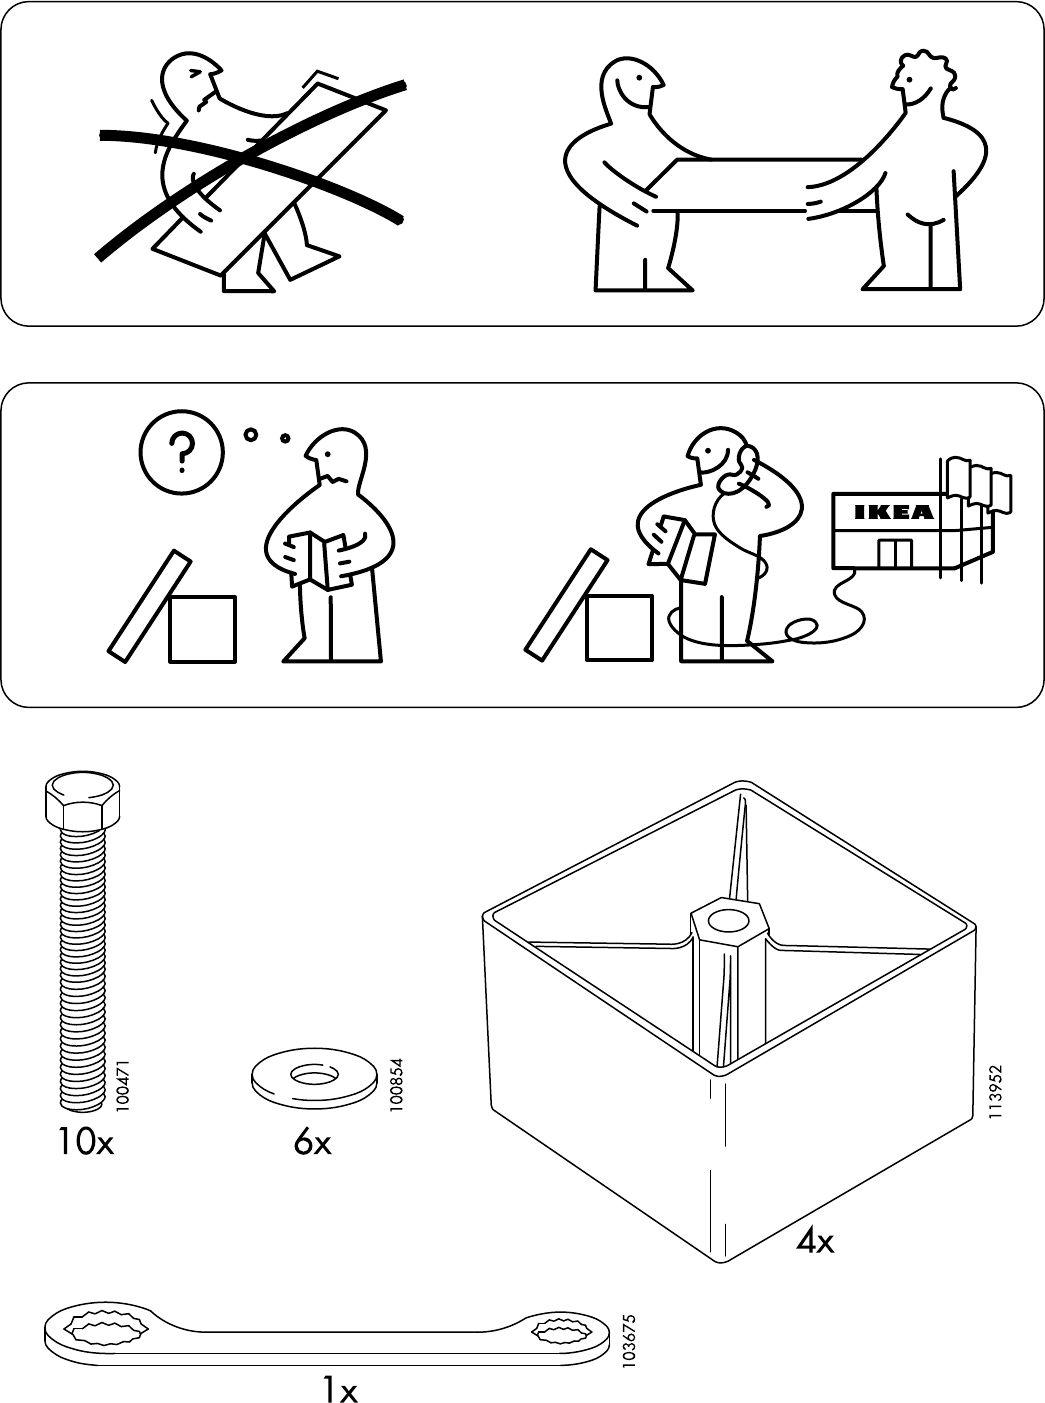 Bedbank Solsta Ikea.Manual Ikea Solsta Page 1 Of 8 All Languages